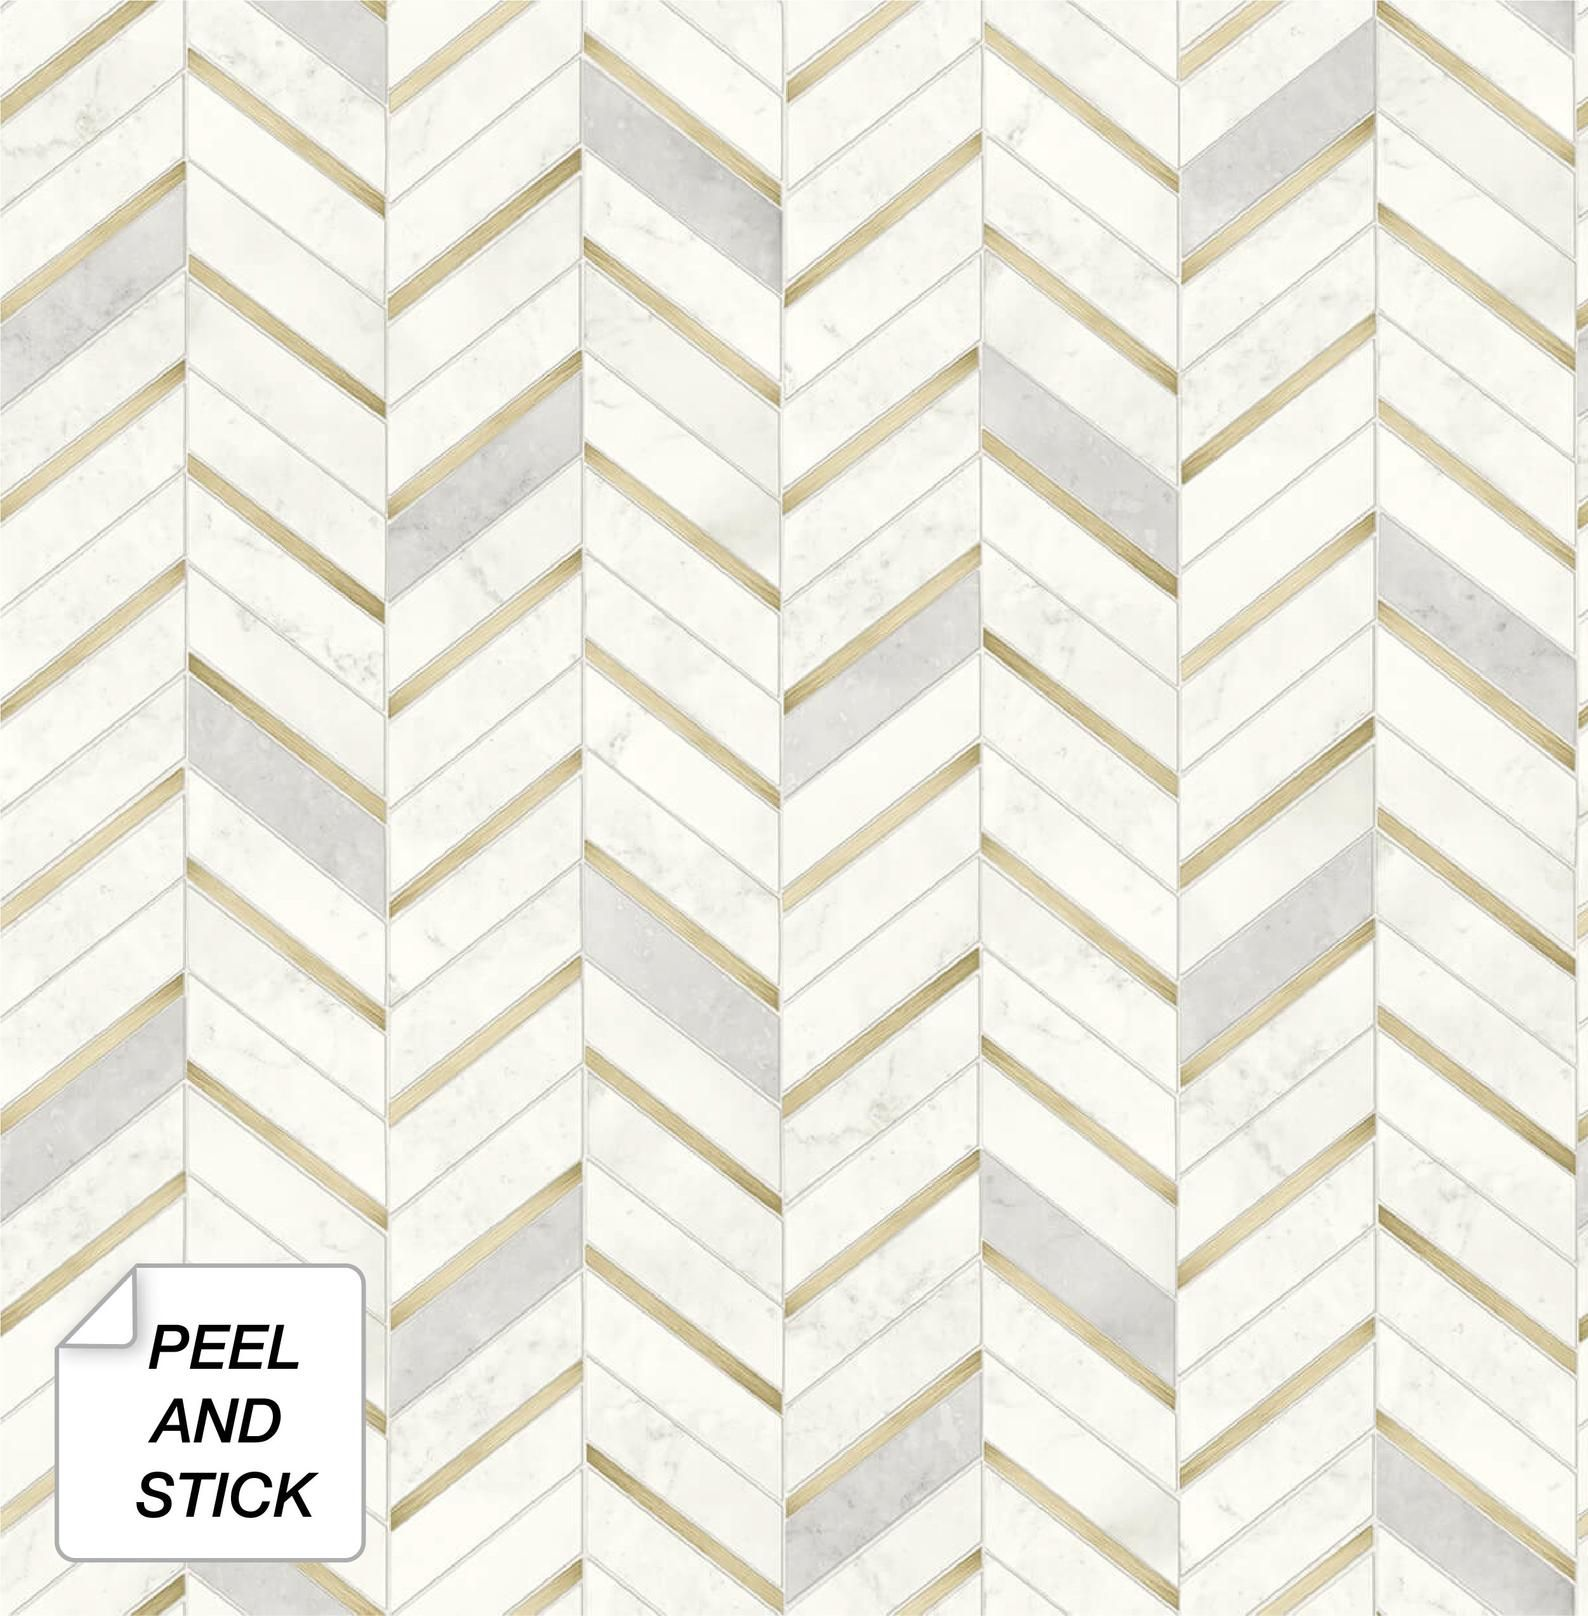 Peel And Stick Self Adhesive Wallpaper Wallpaper Tile Etsy Peel And Stick Wallpaper Chevron Tile Stick On Tiles